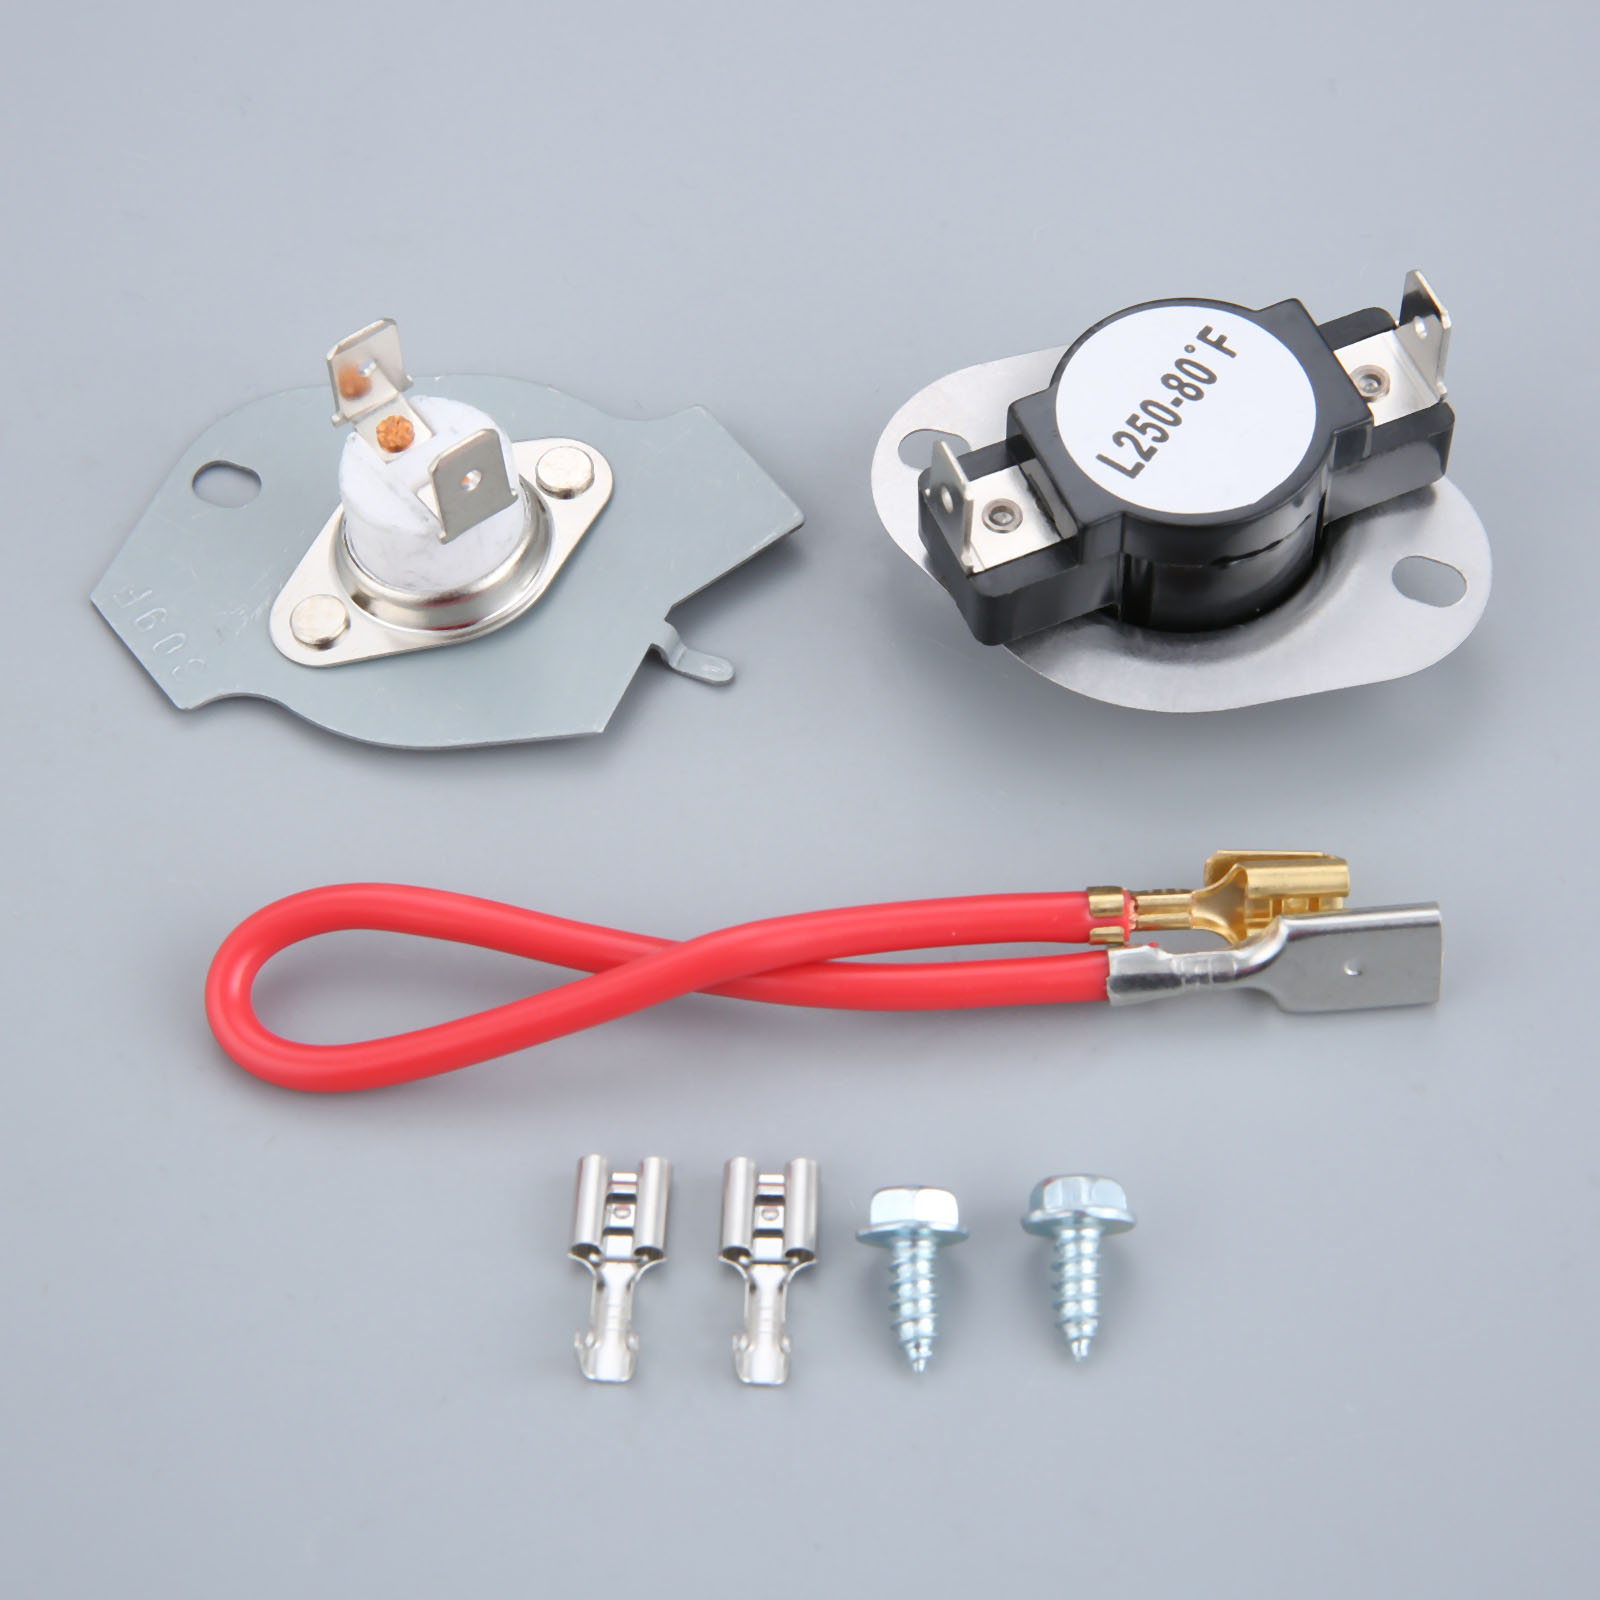 Dryer Thermostat Thermal Cut Out Kit Fits 279816 For Whirlpool Sears 3399848 AP3094244 PS334299 AP3094244